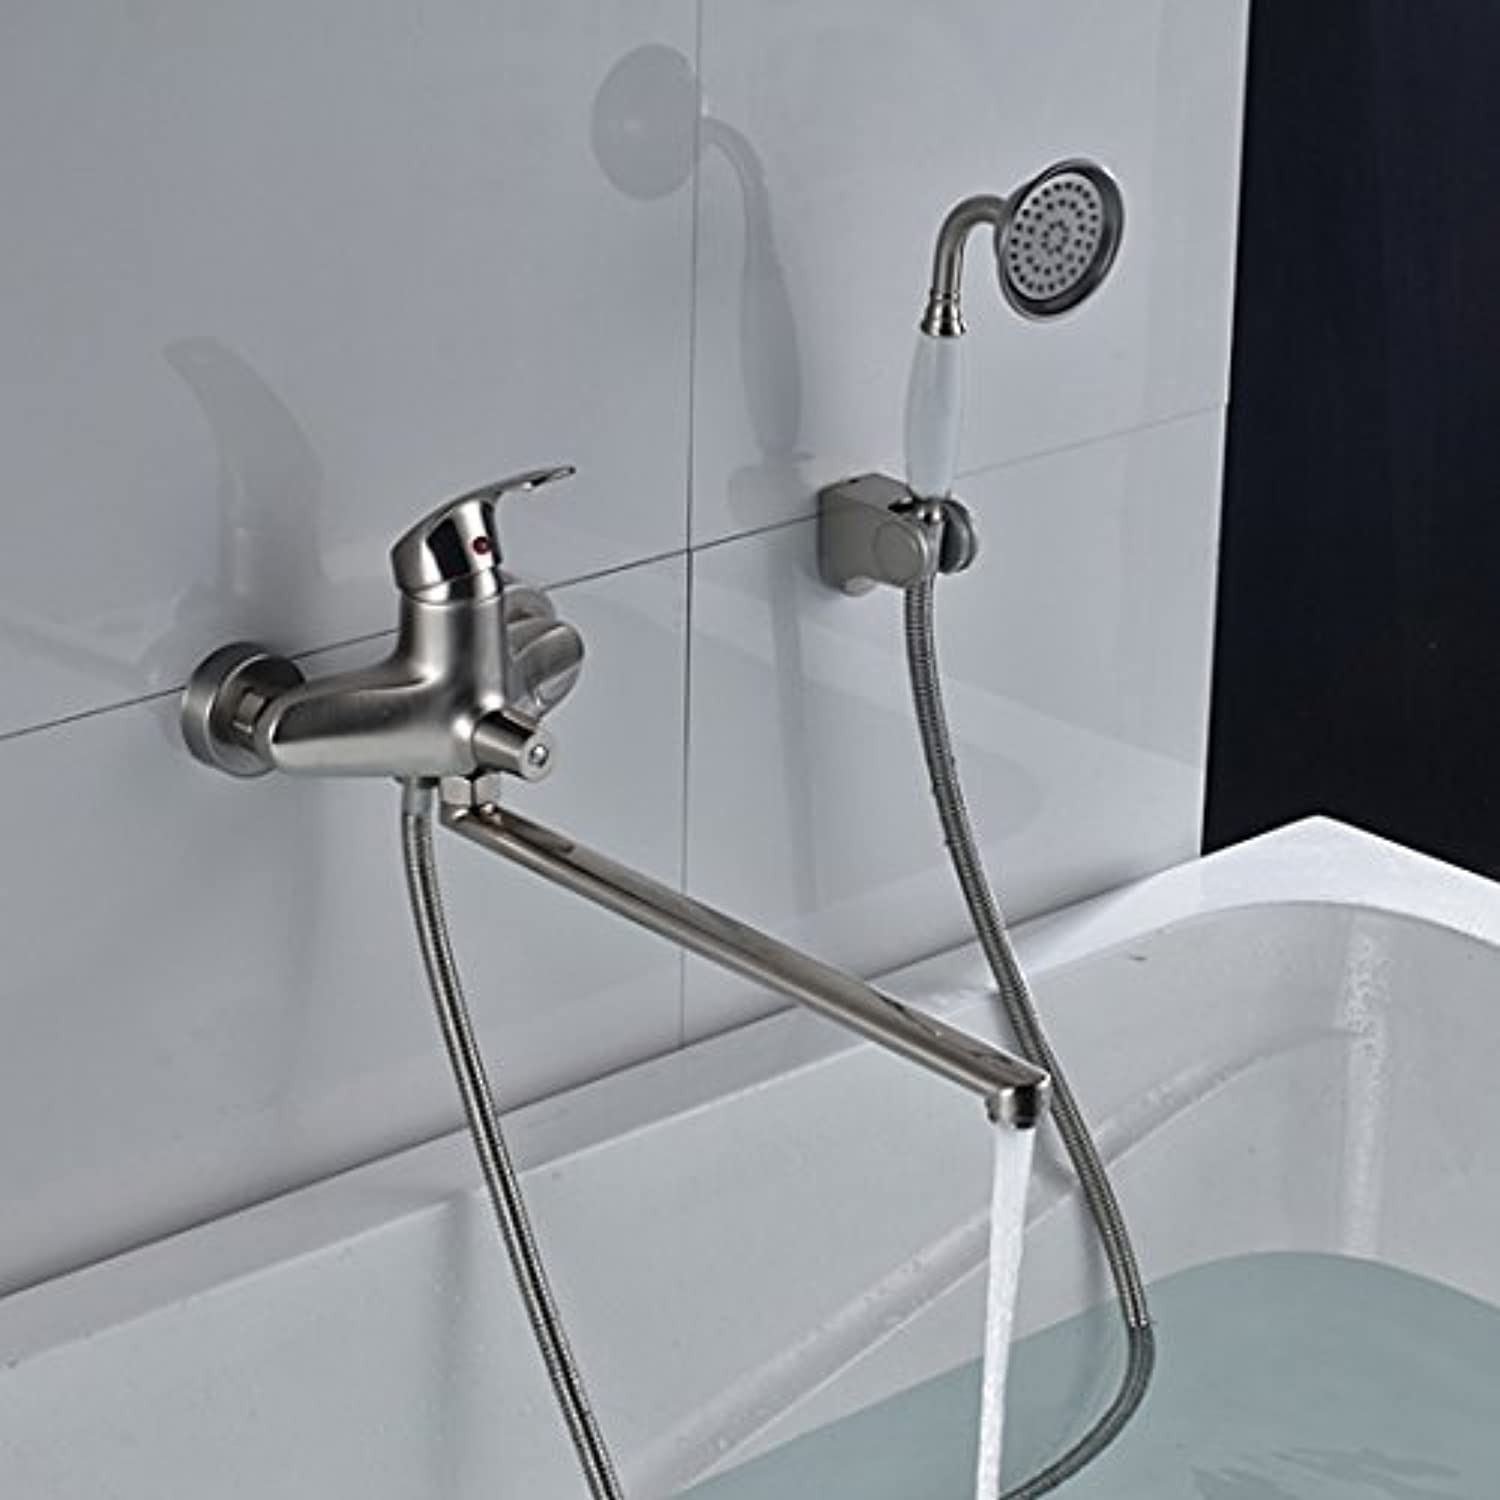 Better Quality Long spout Outlet Faucet Glass to The Wall Assembled at Longnose Glass with Hand Shower & Bearer, C